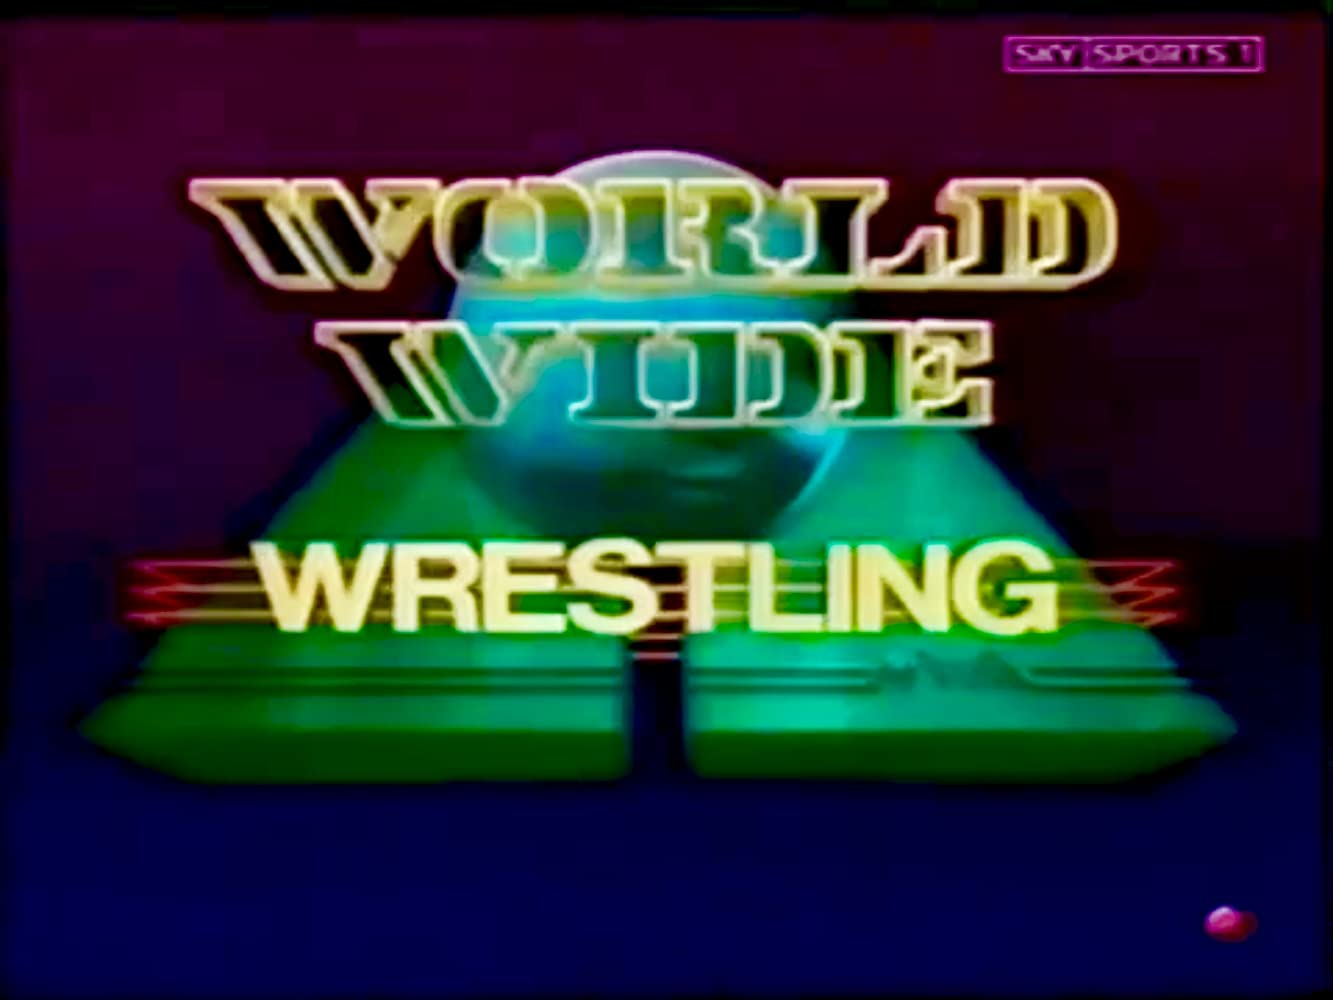 WCW Worldwide Wrestling (1975-2001)